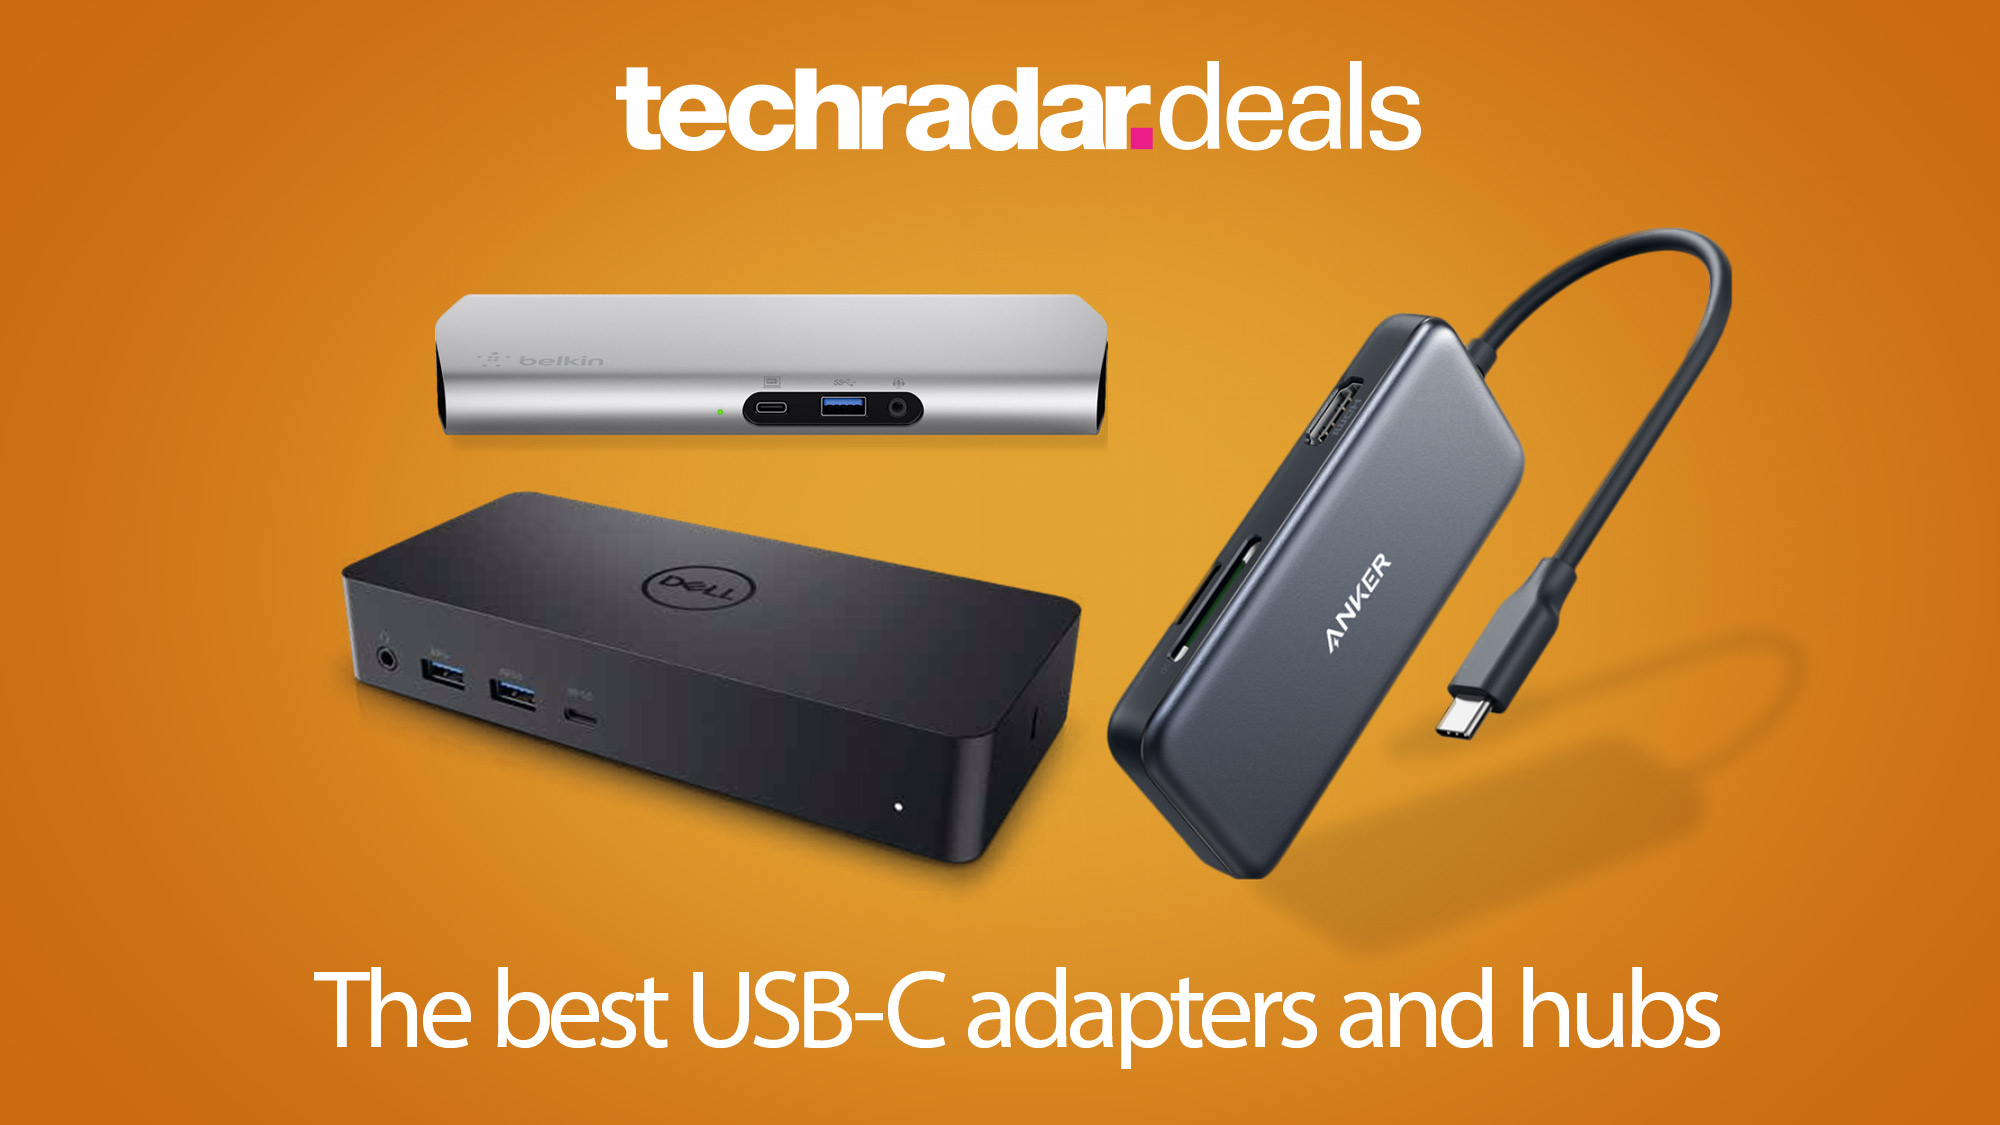 Usb C The Best Usb-c Adapters 2020: The Best Deals For Macbook Pros And Laptop Users | Techradar